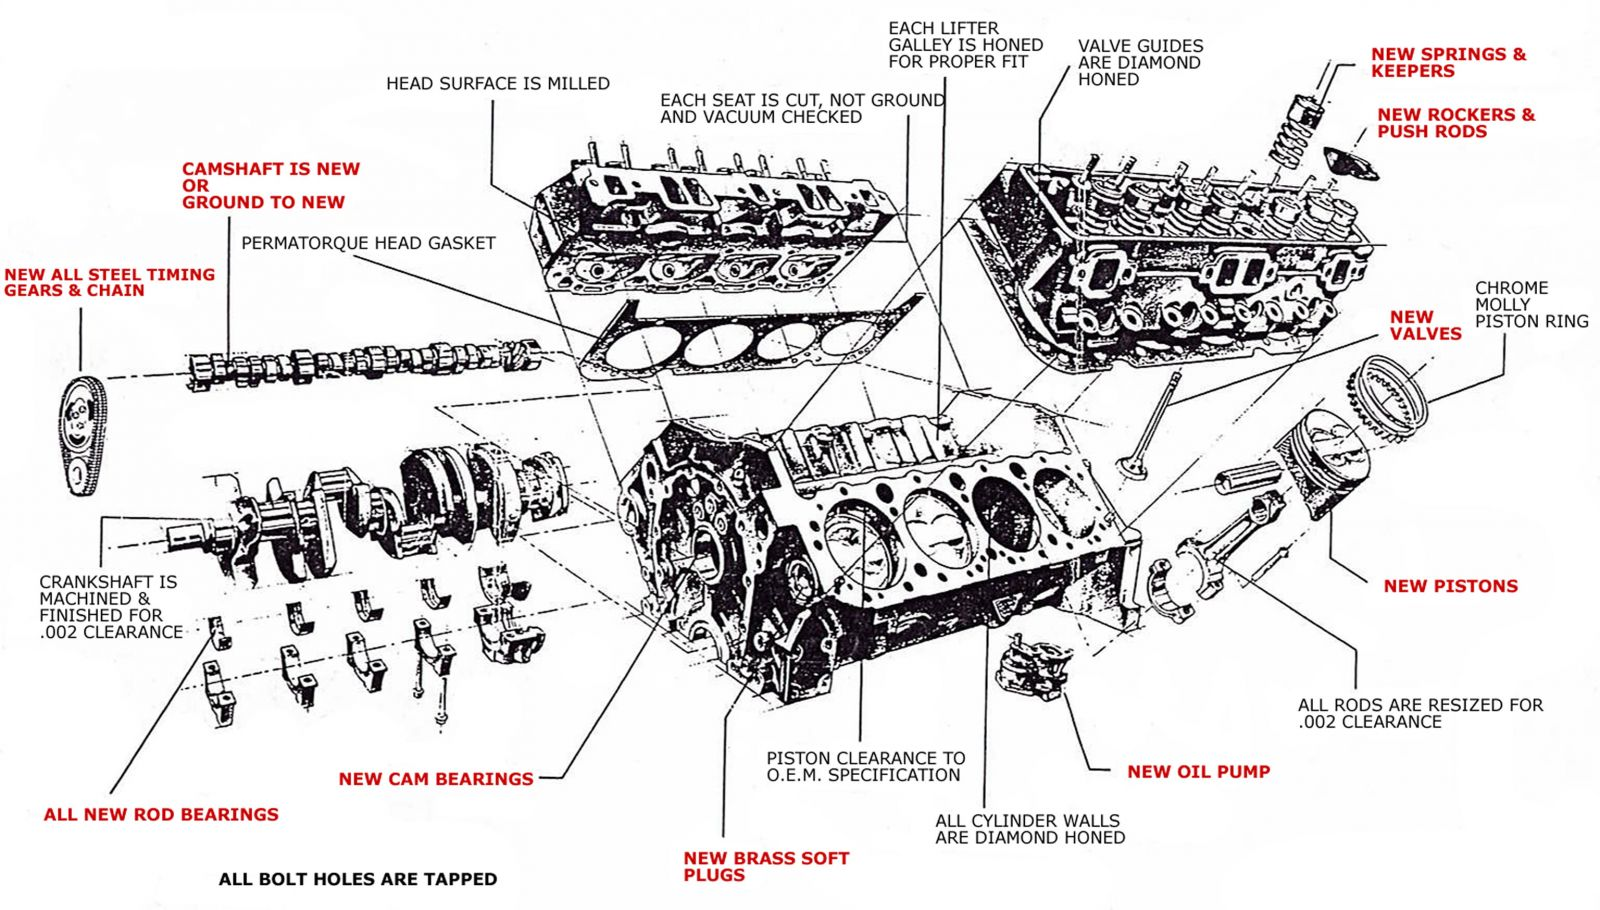 Engine Exploded View Png - Members Gallery